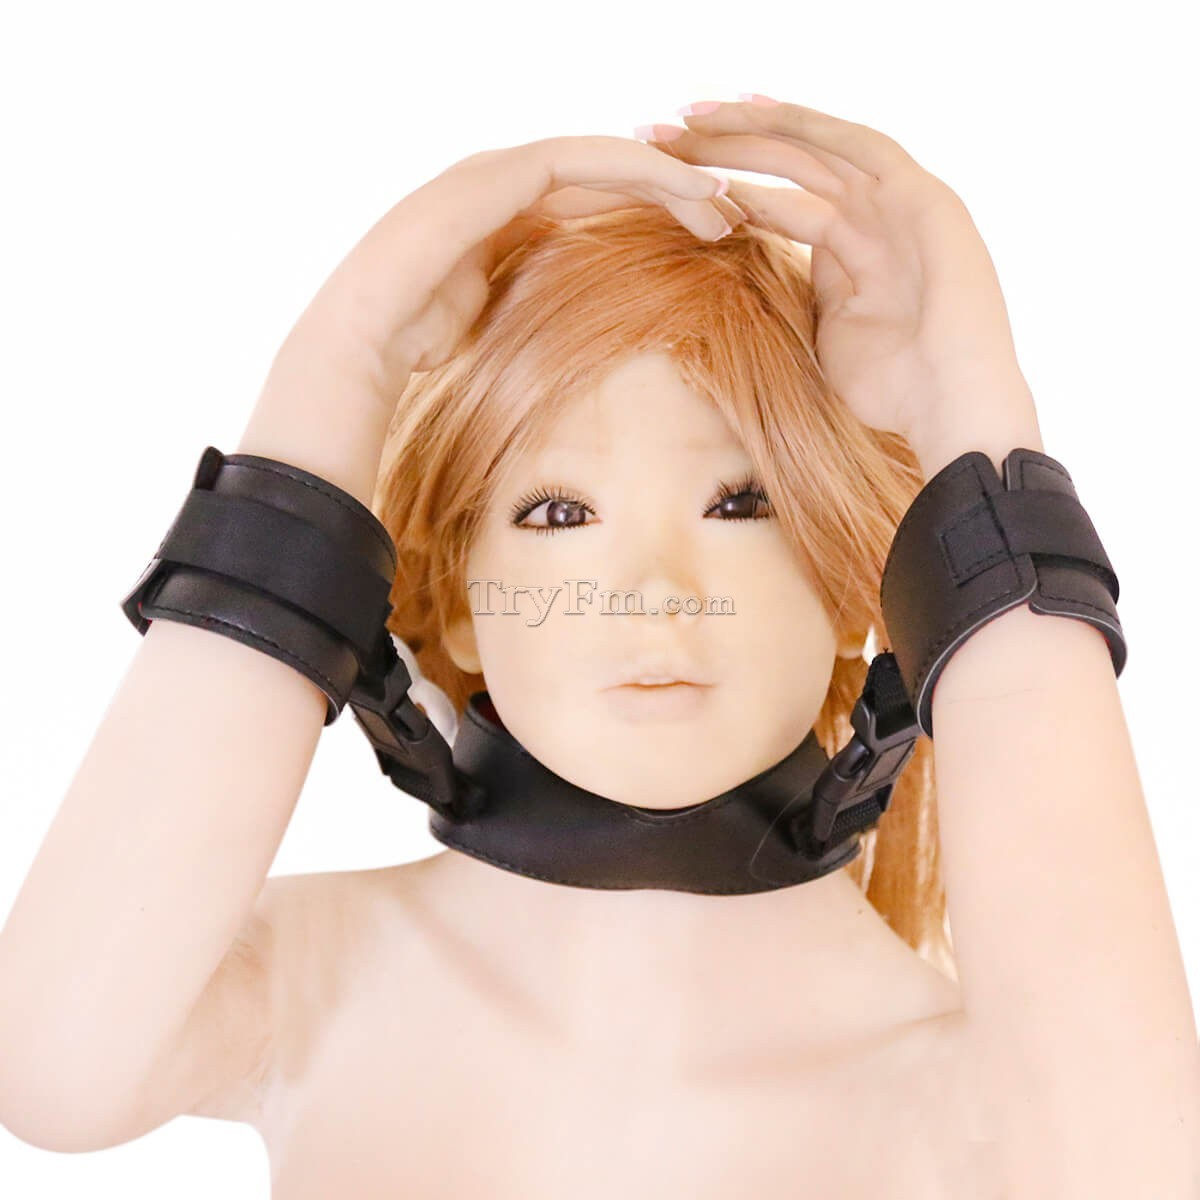 10-Polyethylene-neck-collar-with-cuffs6.jpg